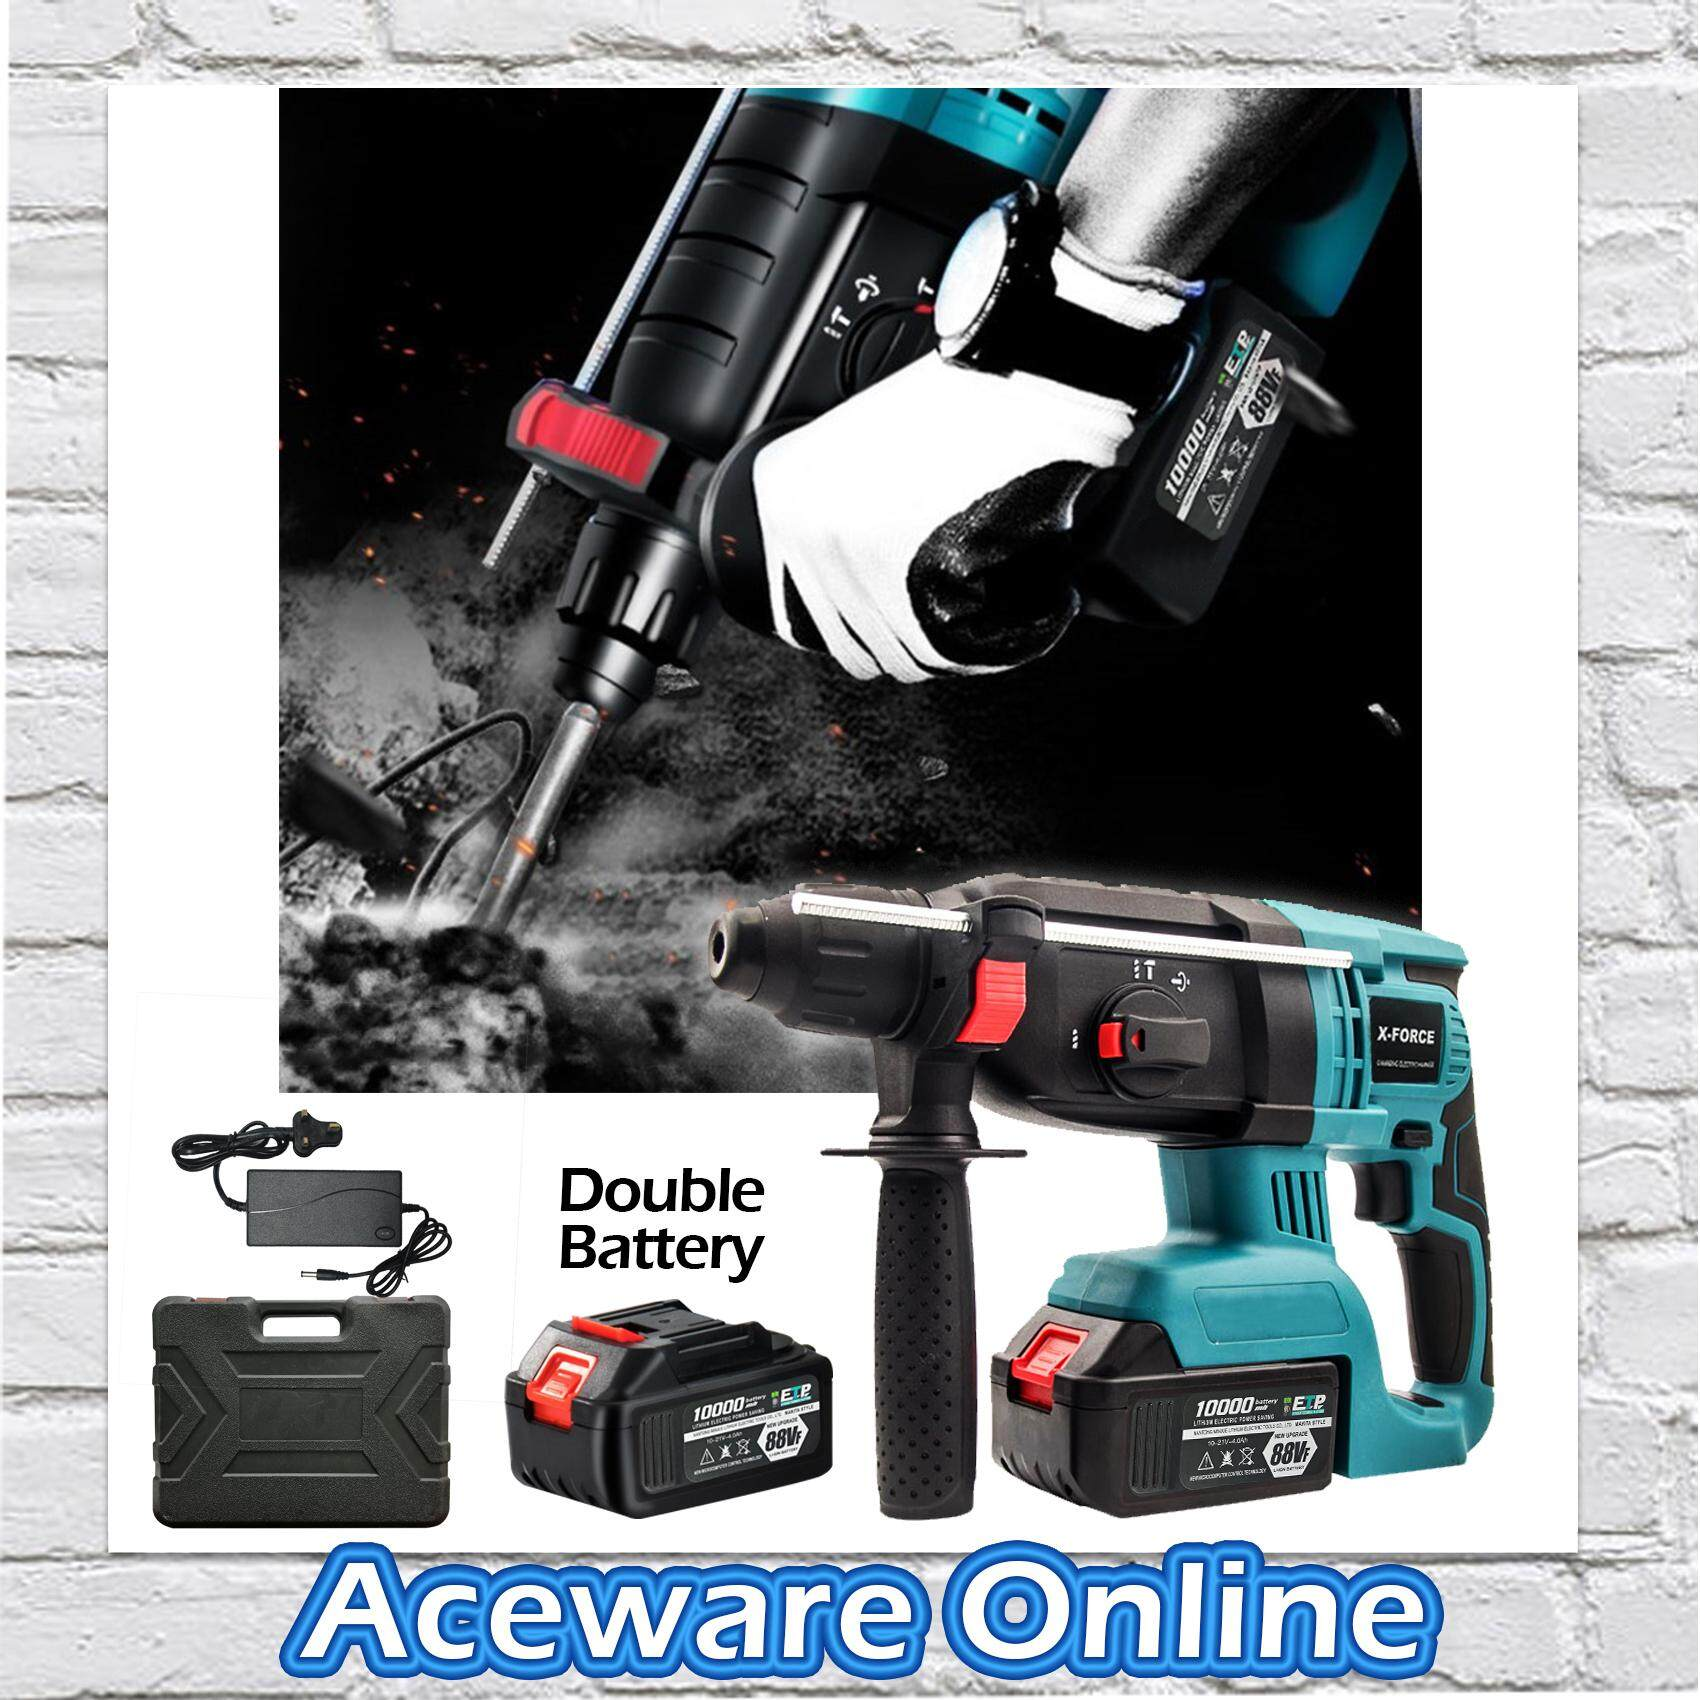 21V X-Force 3Mode Rechargeable Cordless Rotary Hammer 1000mh Brushless GBH180-Li